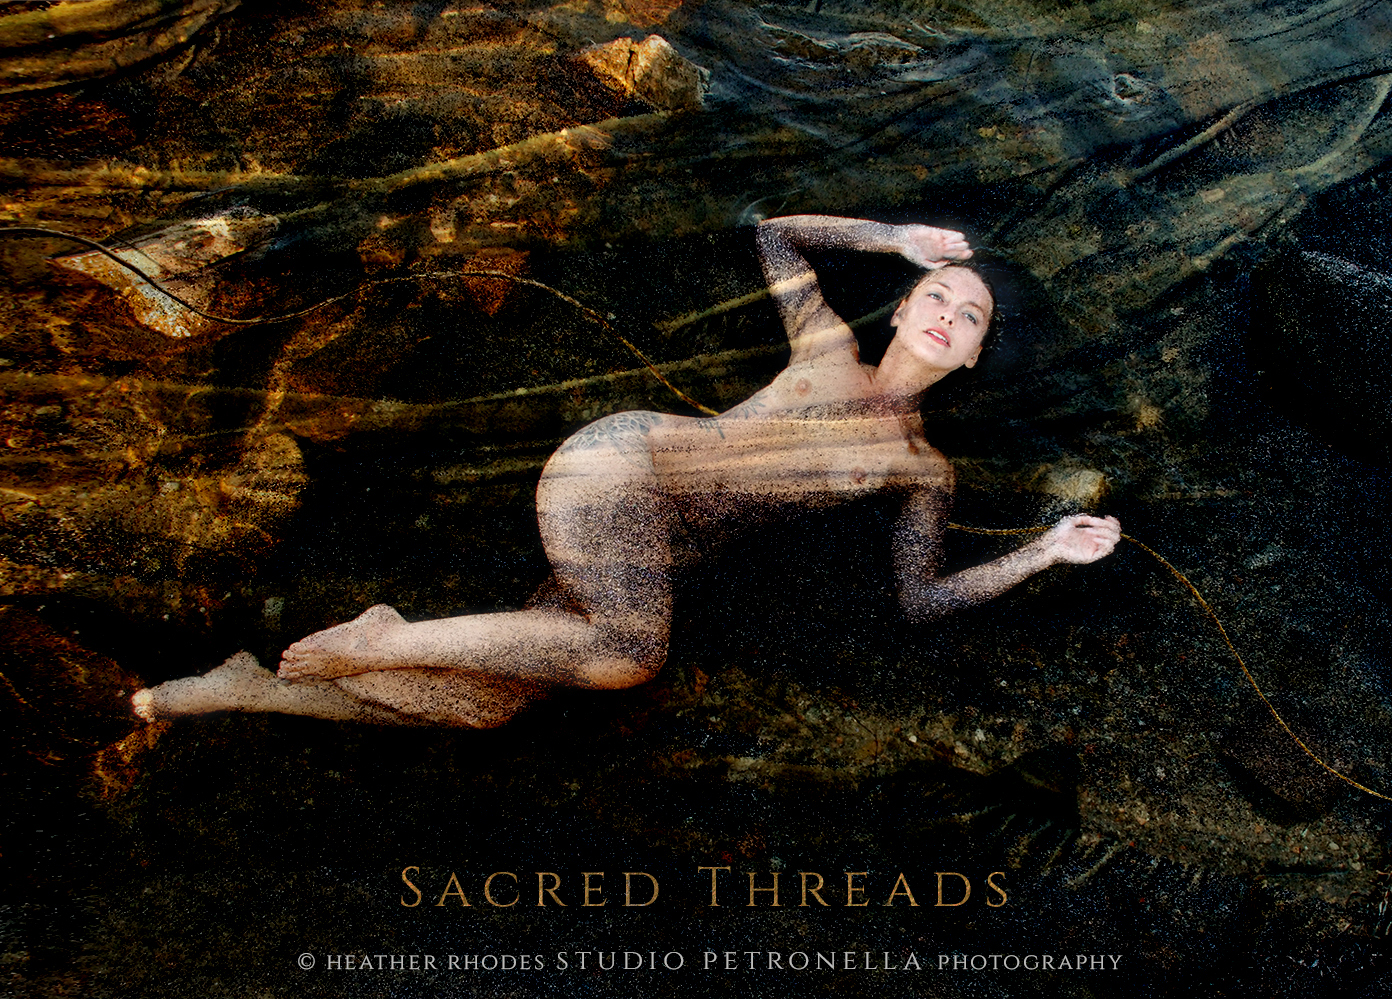 emily sacred threads poem image © heather rhodes studio petronella all rights reserved.jpg